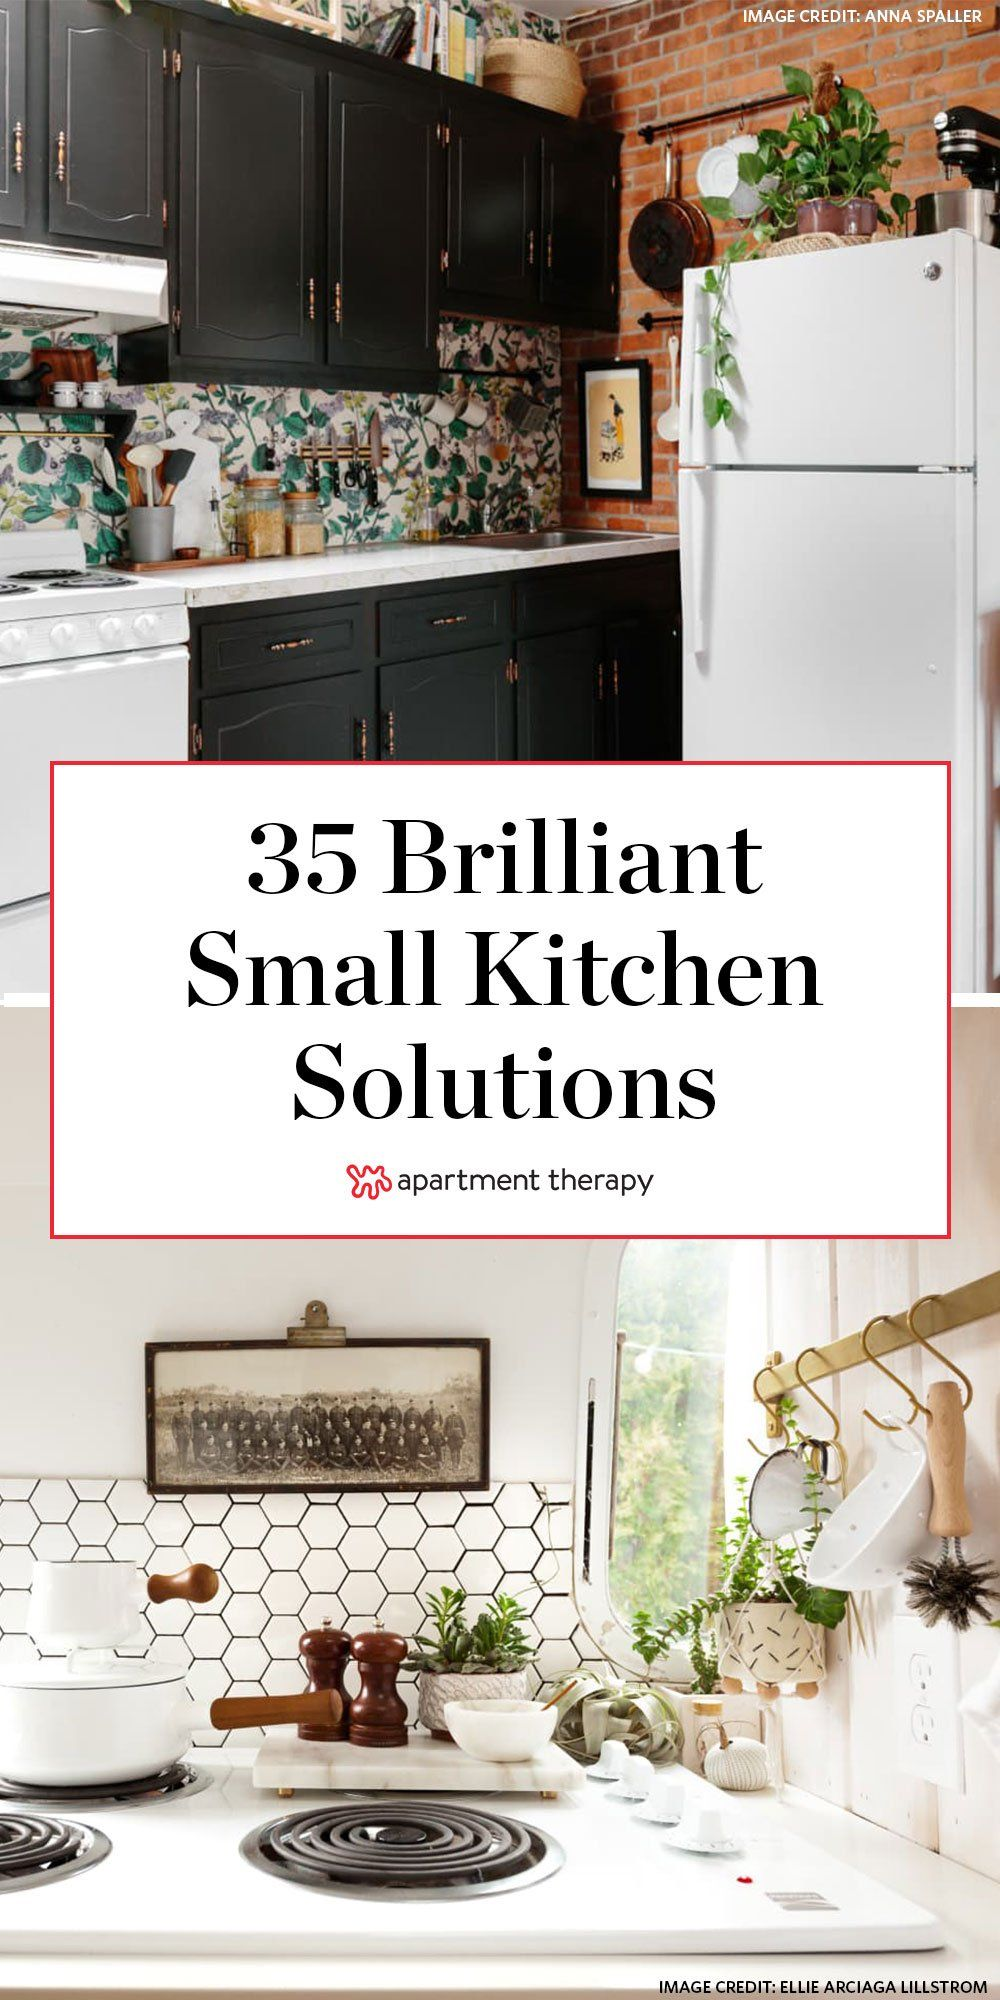 40 Of The Very Best Small Kitchen Decorating Ideas And Design Solutions Small Kitchen Solutions Small Kitchen Kitchen Inspirations